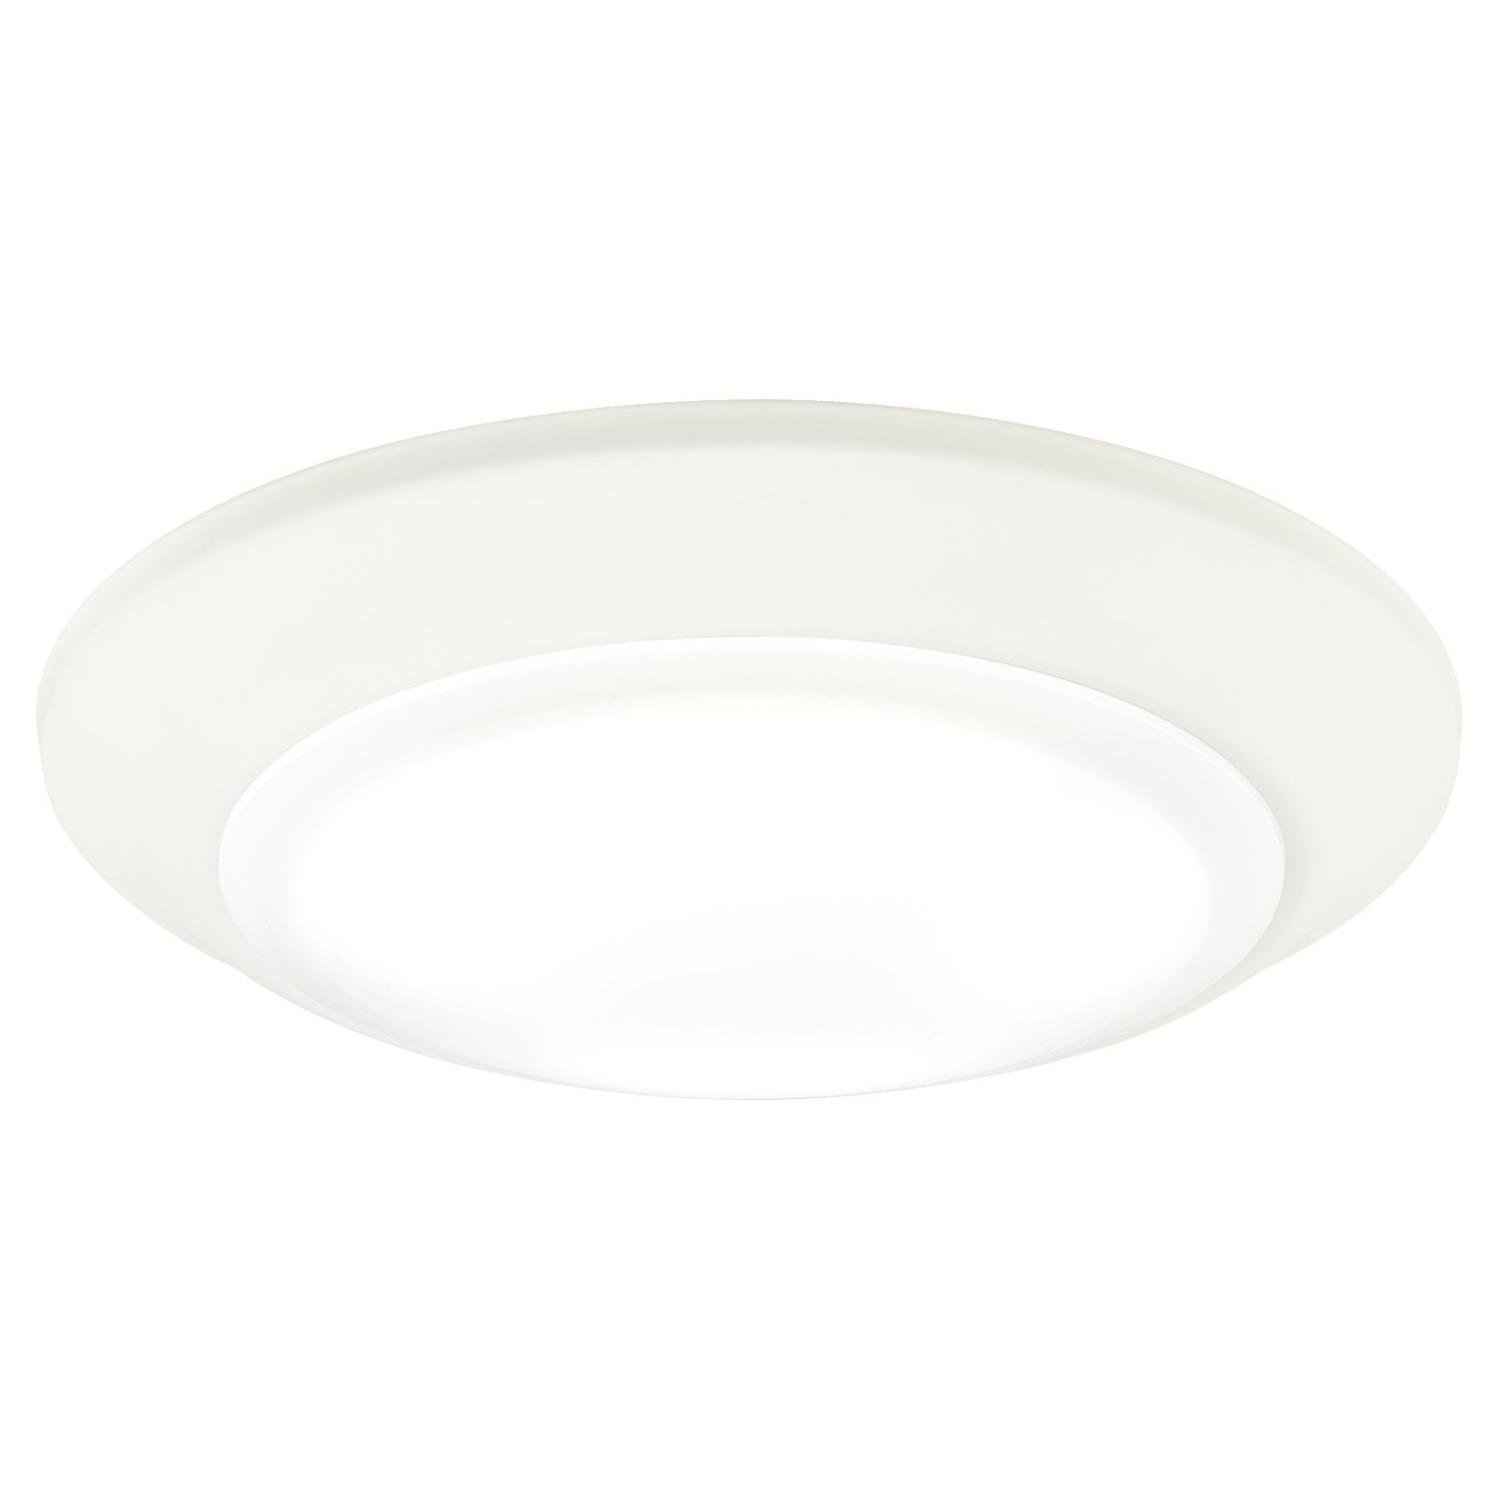 Westinghouse Lighting 6323300 LED Indoor/Outdoor Dimmable Surface Mount Wet Location, White Finish with Frosted Lens,